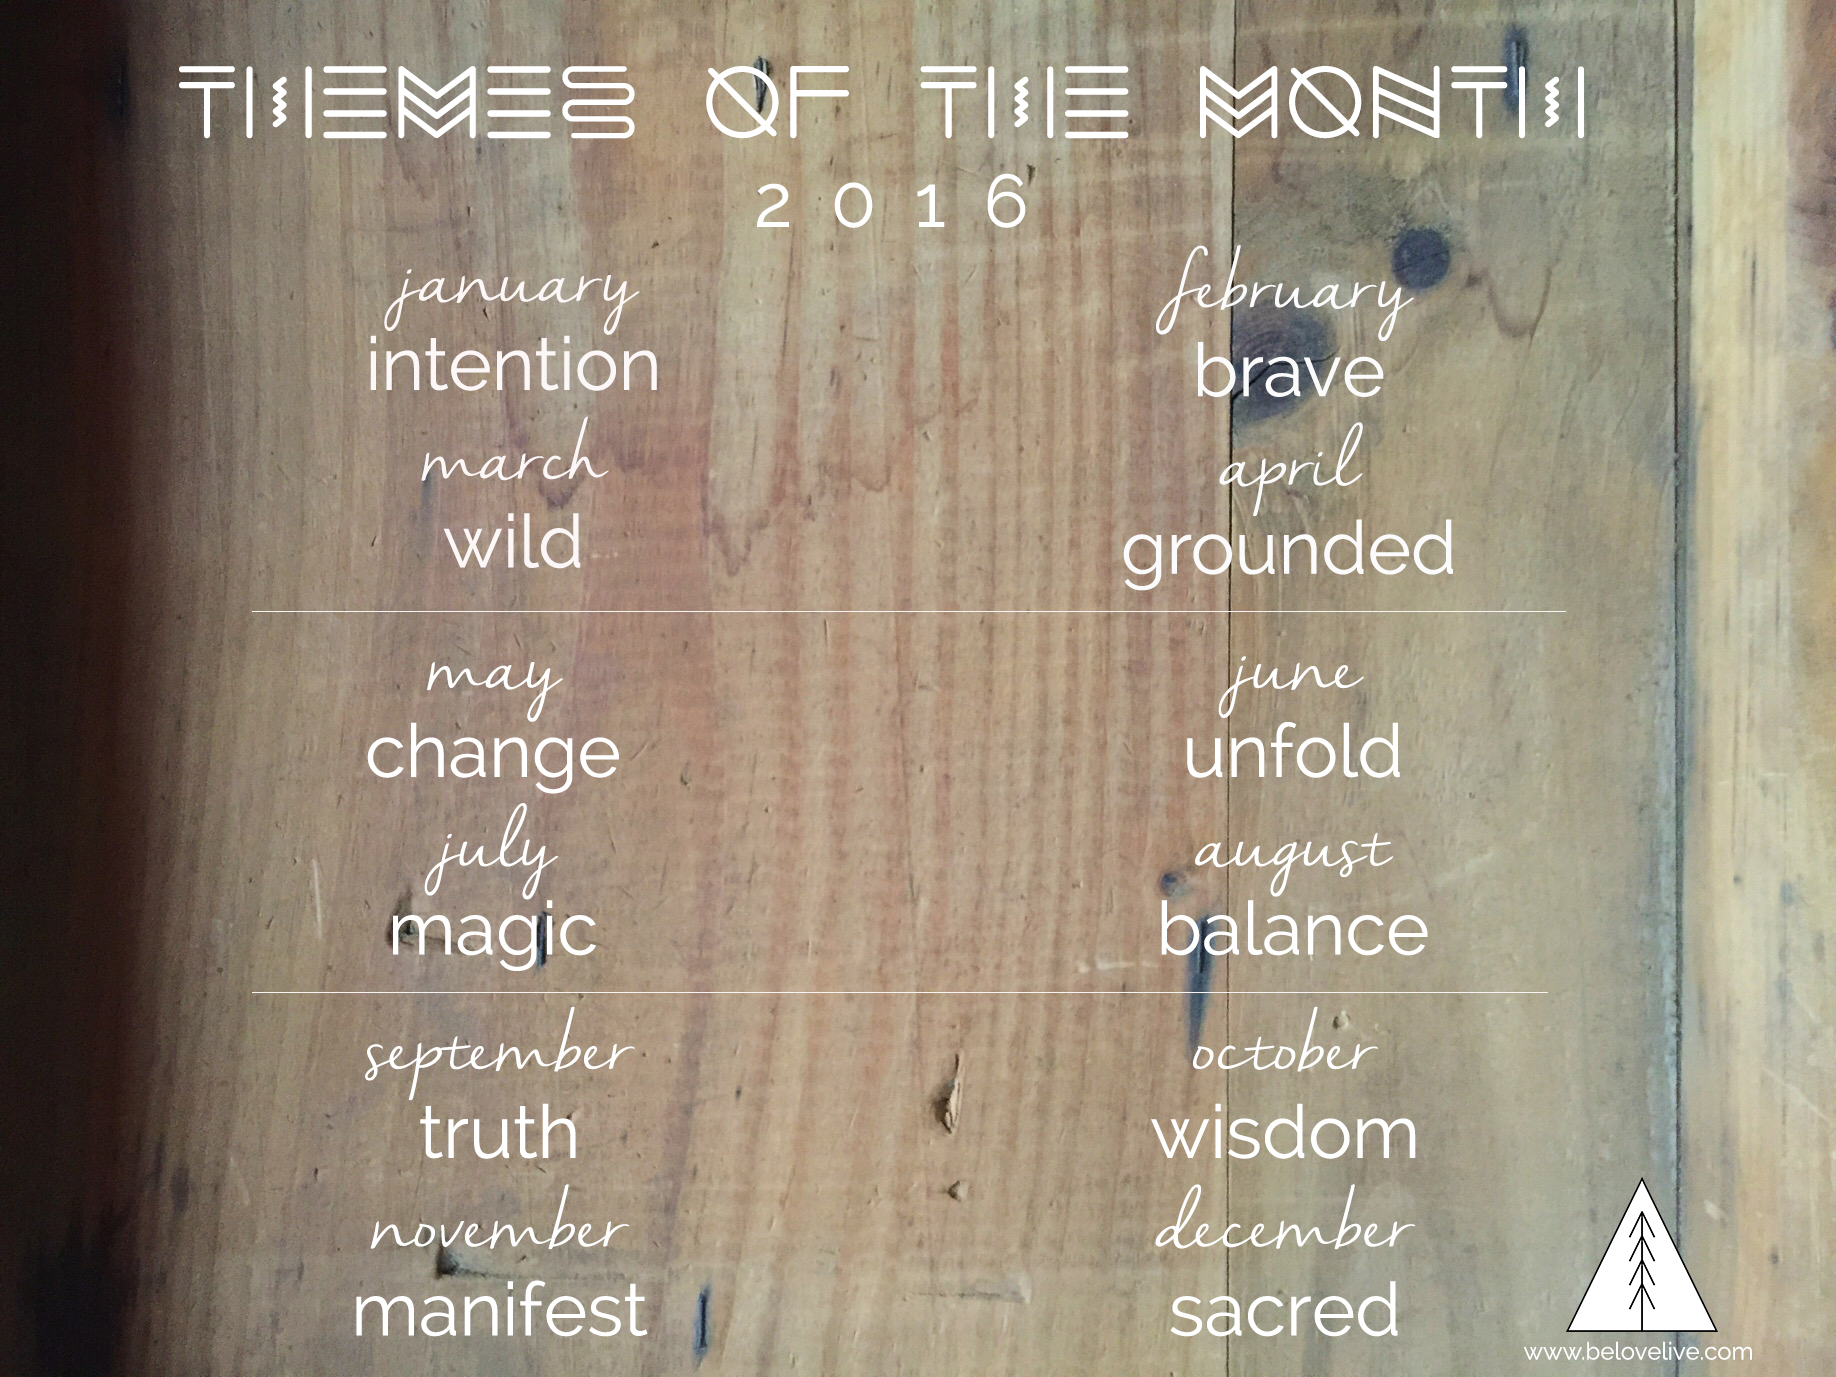 themes-of-the-year